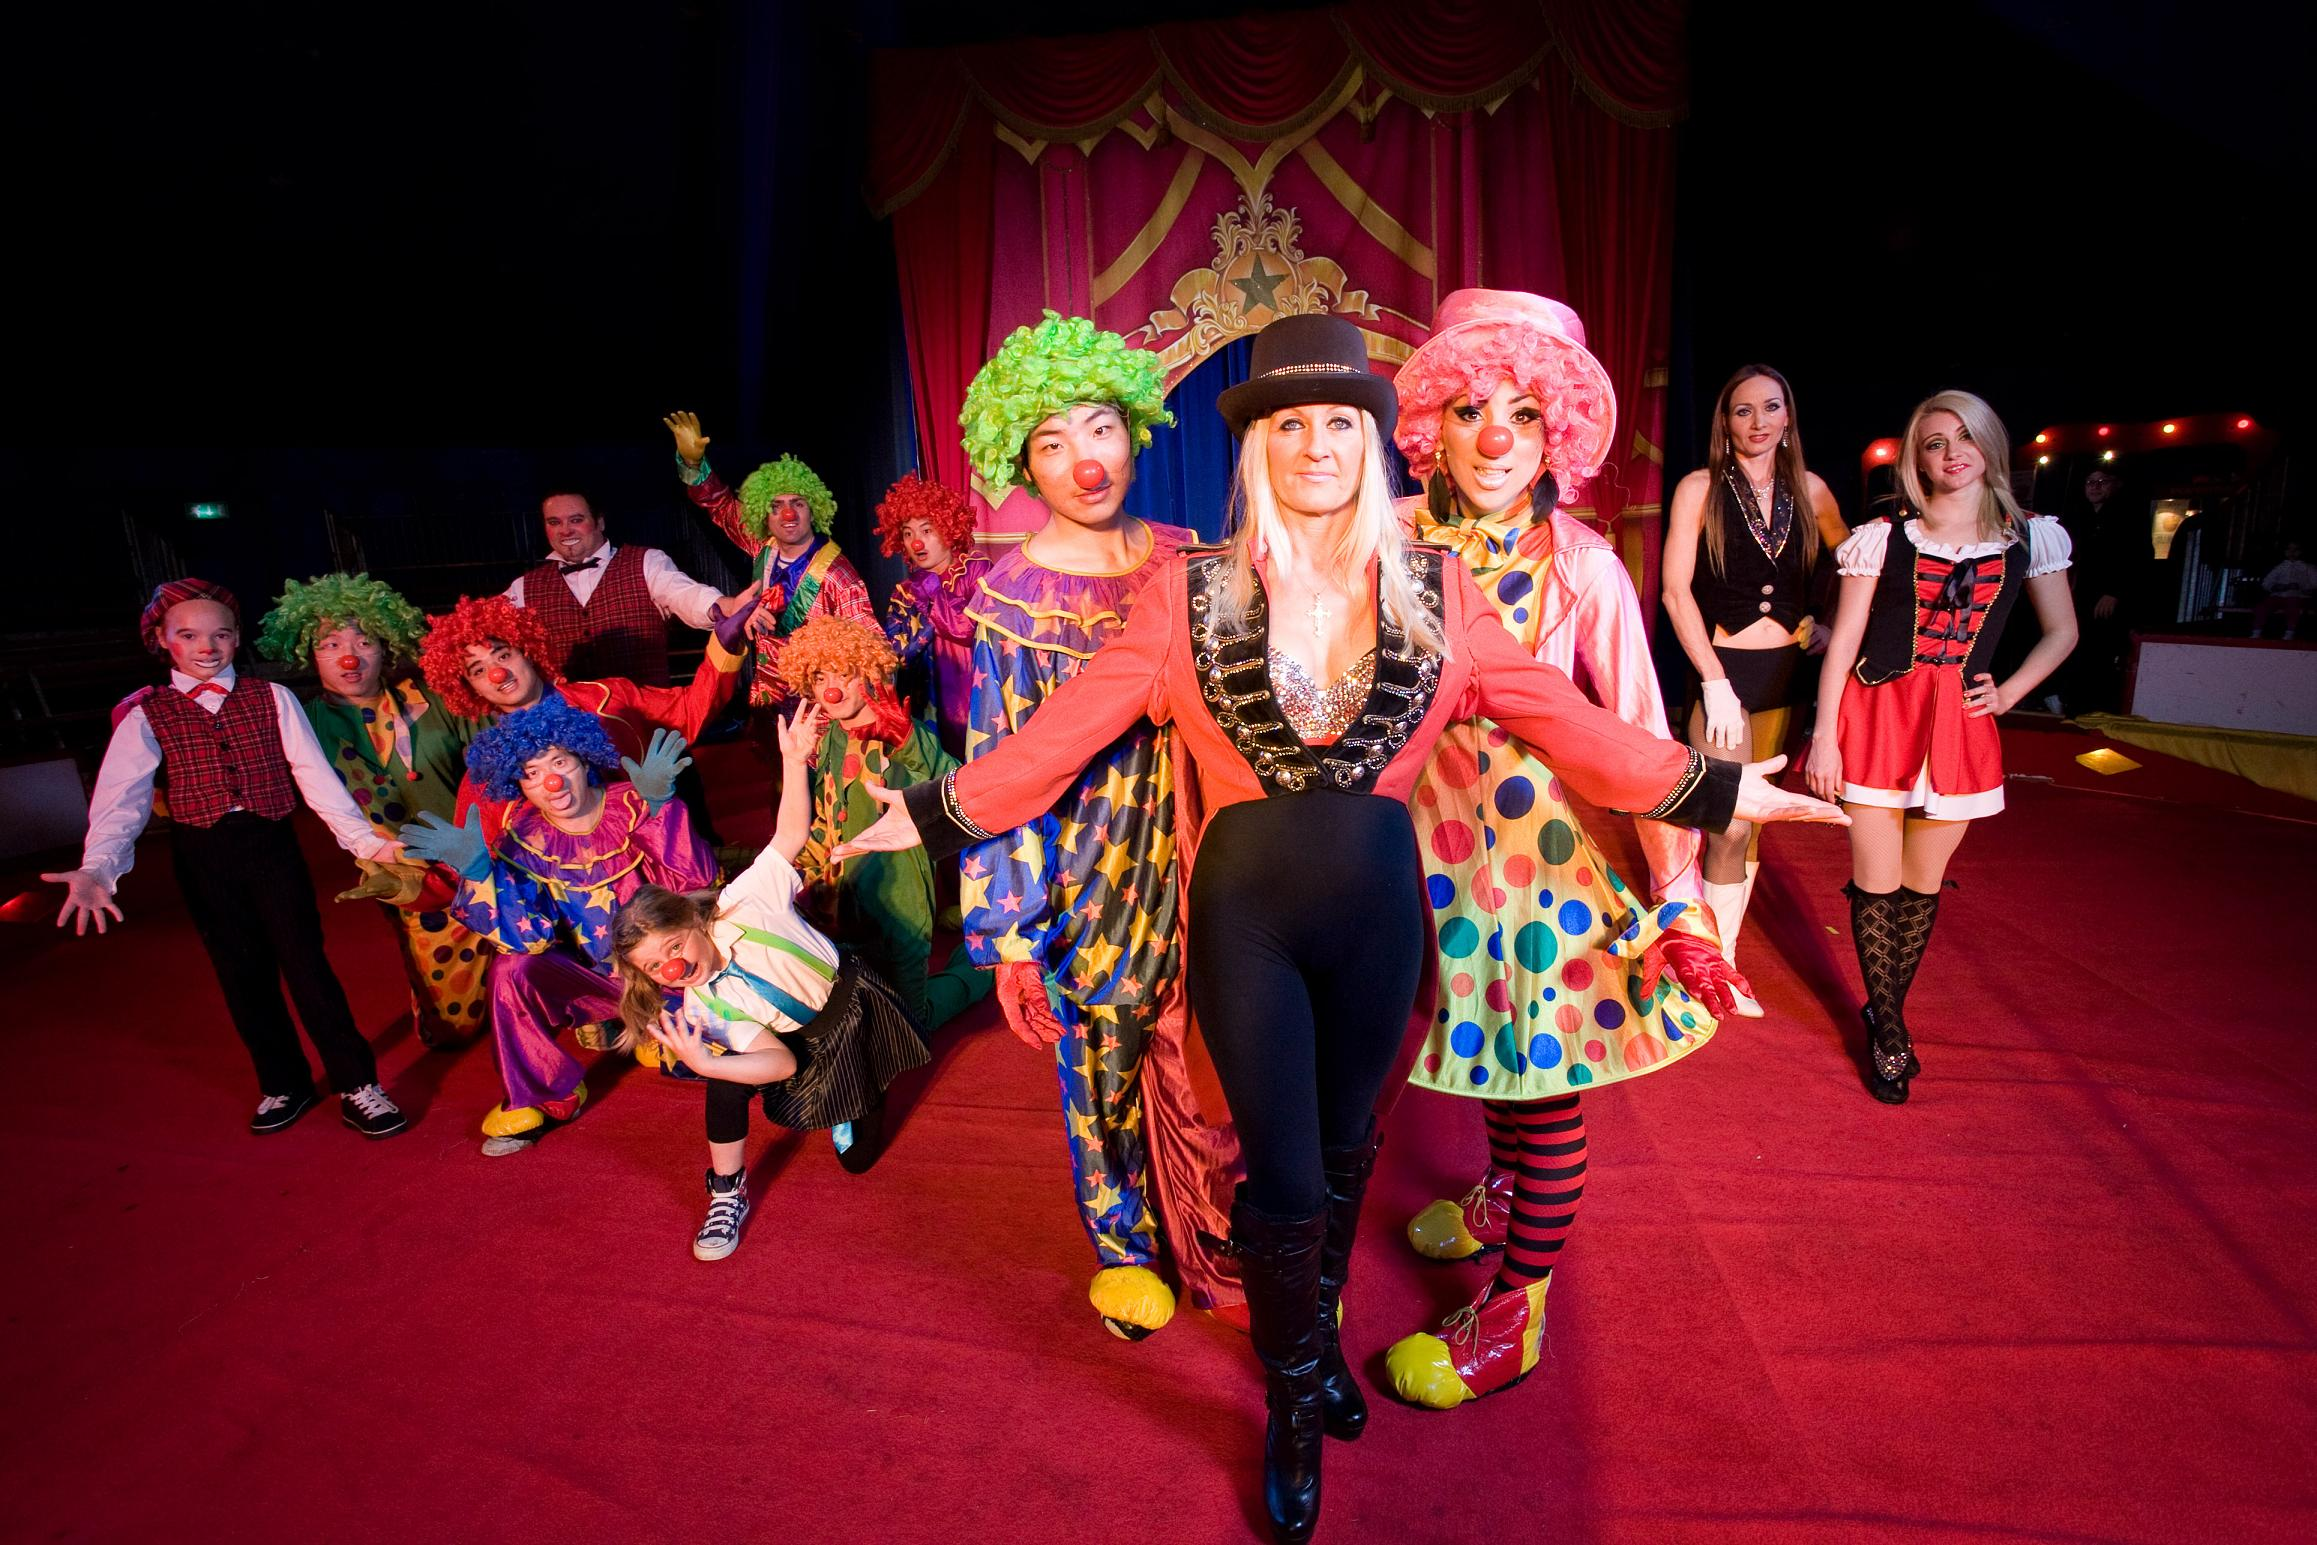 Christmas Carnival Theme Outfit.Circus Themed Costume Ideas The Square